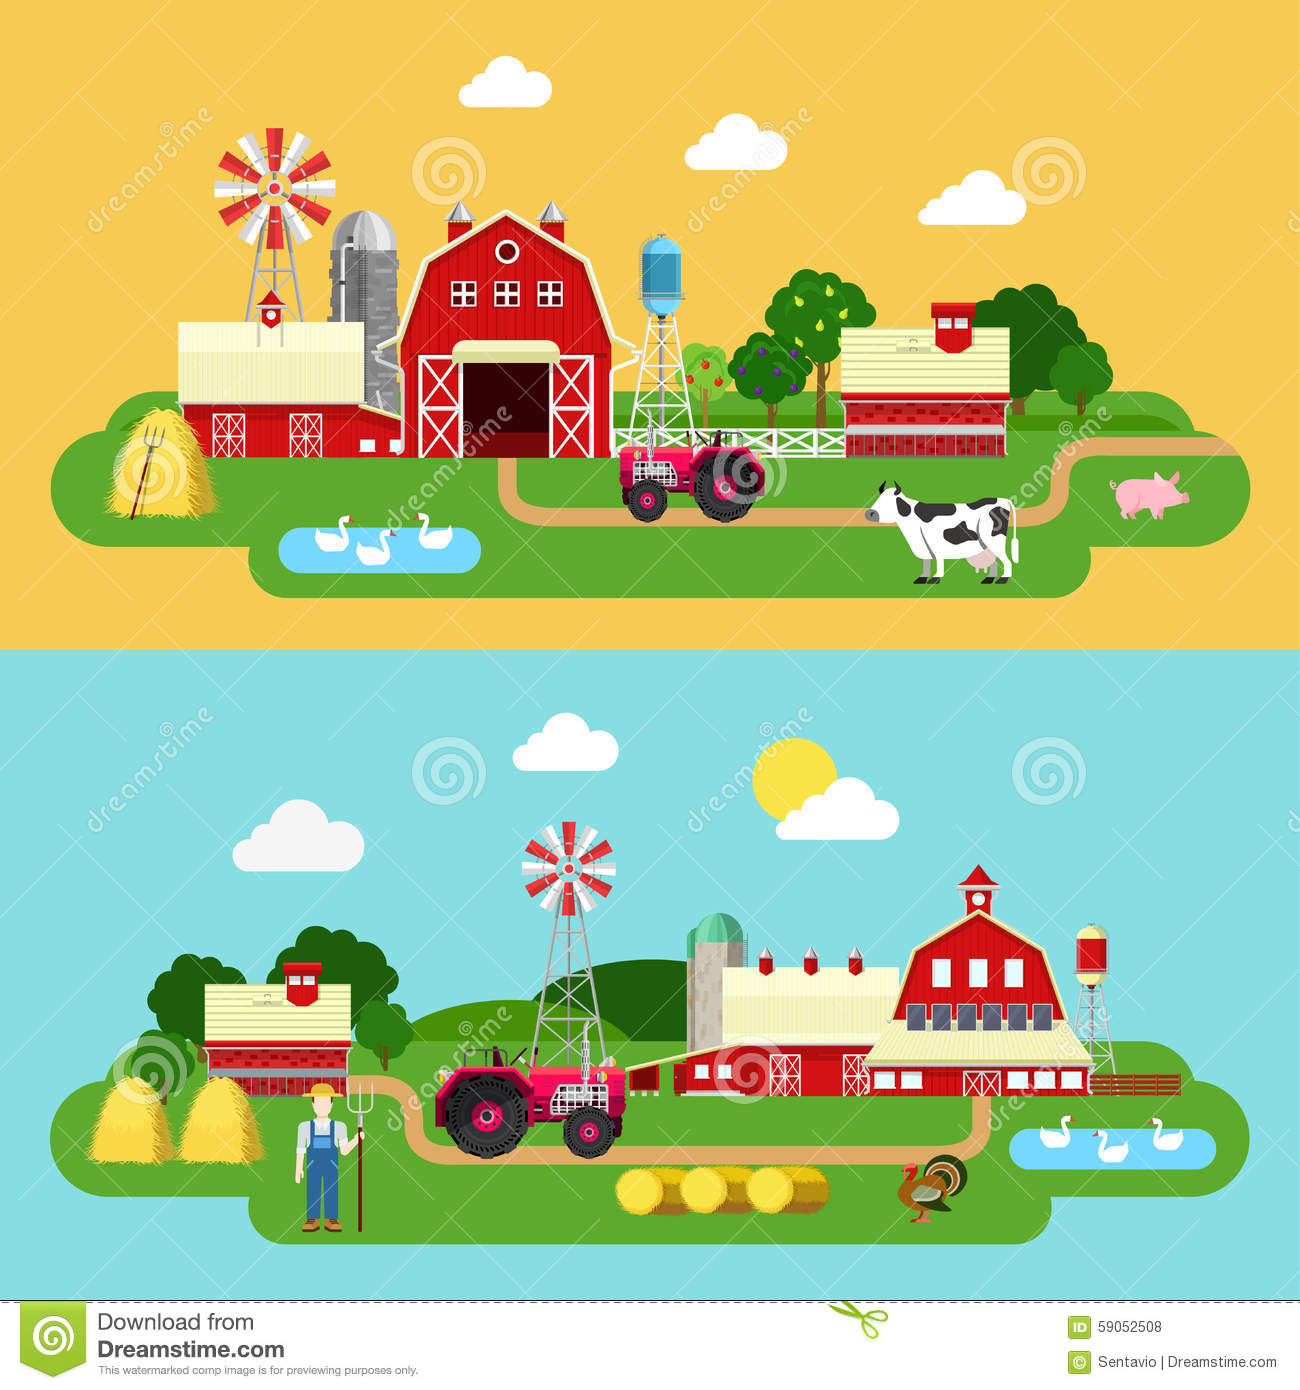 Flat Vector Farming Agriculture Banner: Farm Building, Livestock.